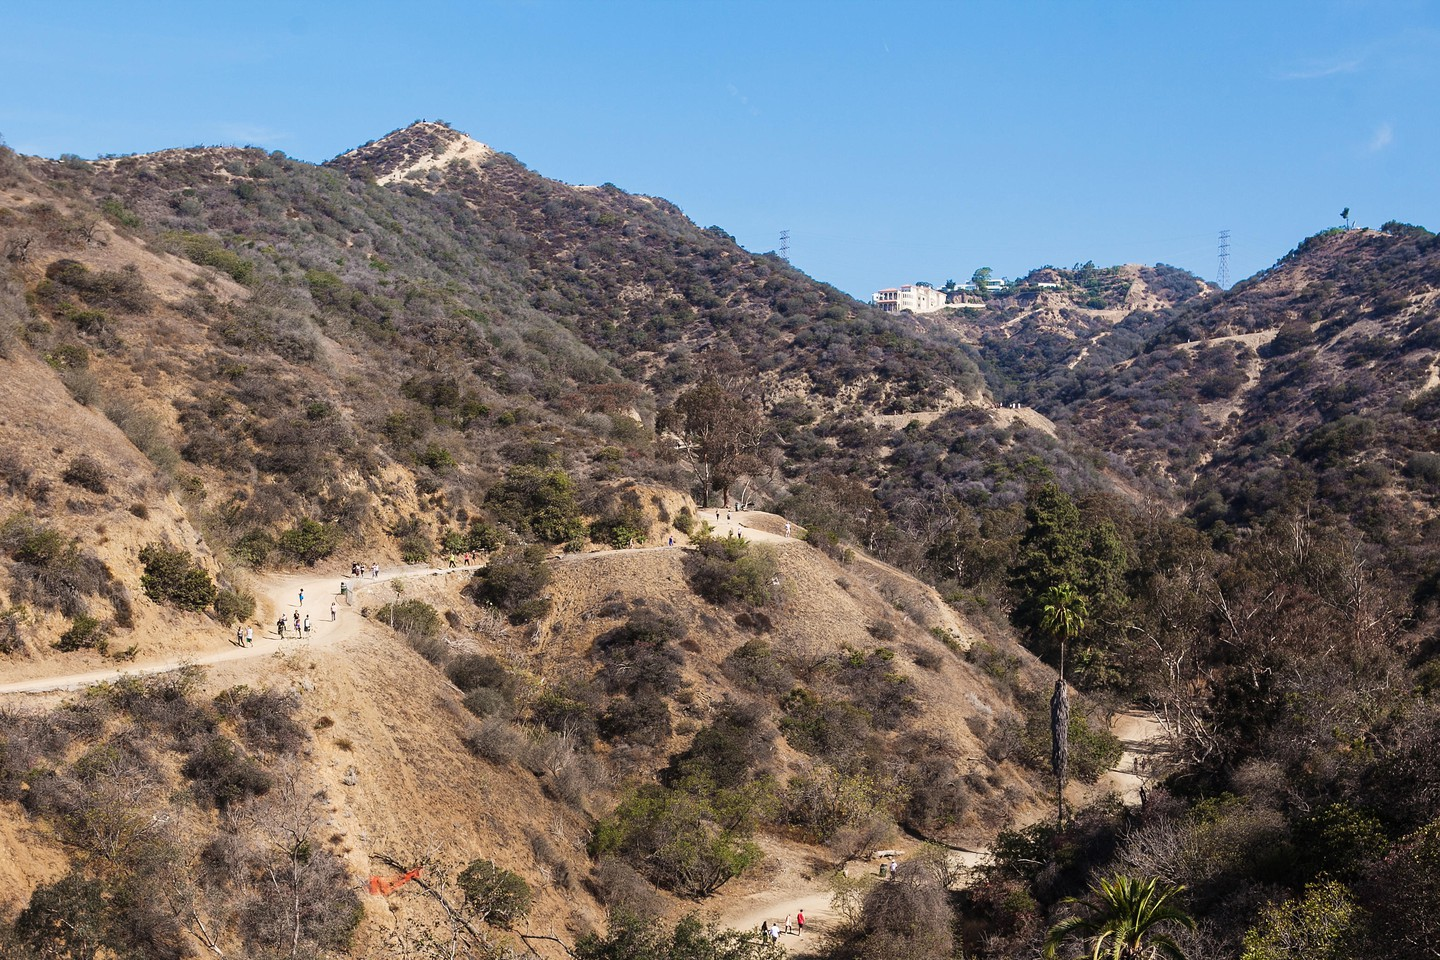 View of natural in mountains, Los Angeles runyon canyon park, California